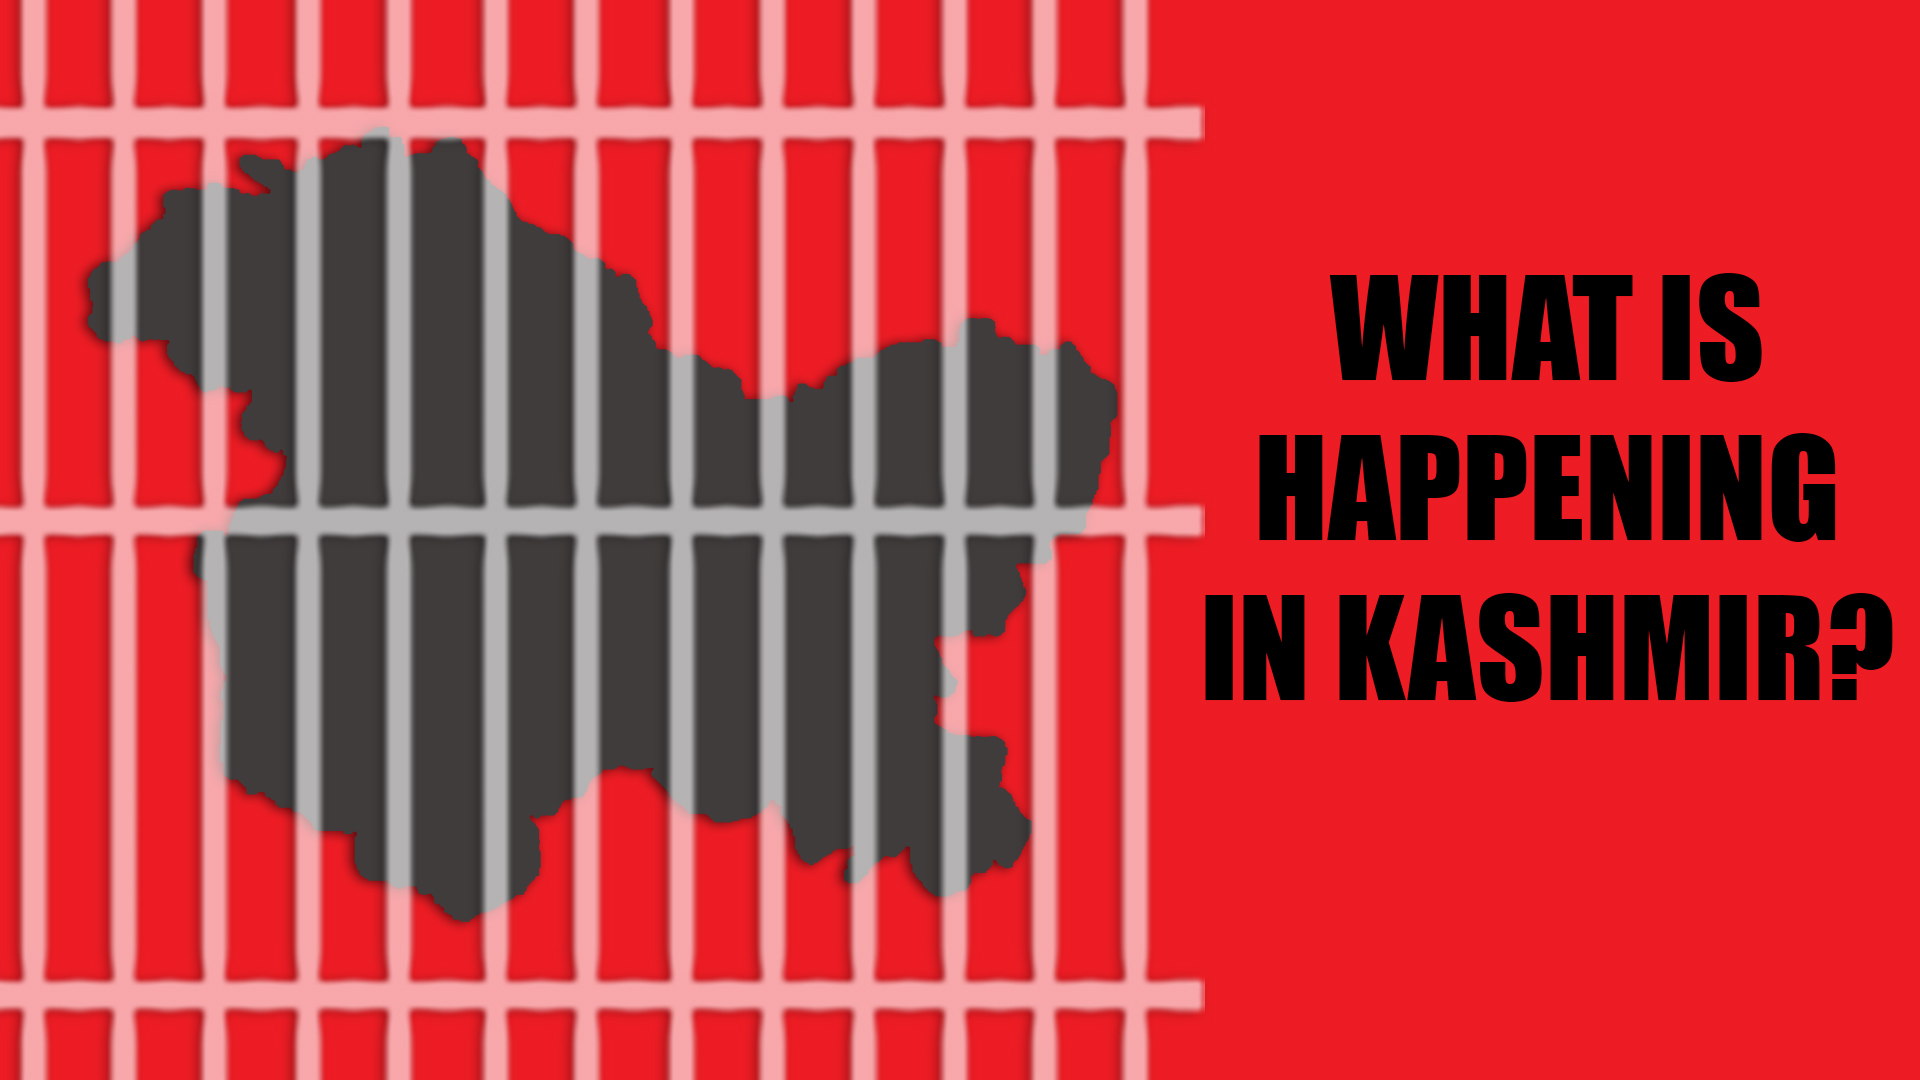 Kashmir_What is happening_60 days of siege